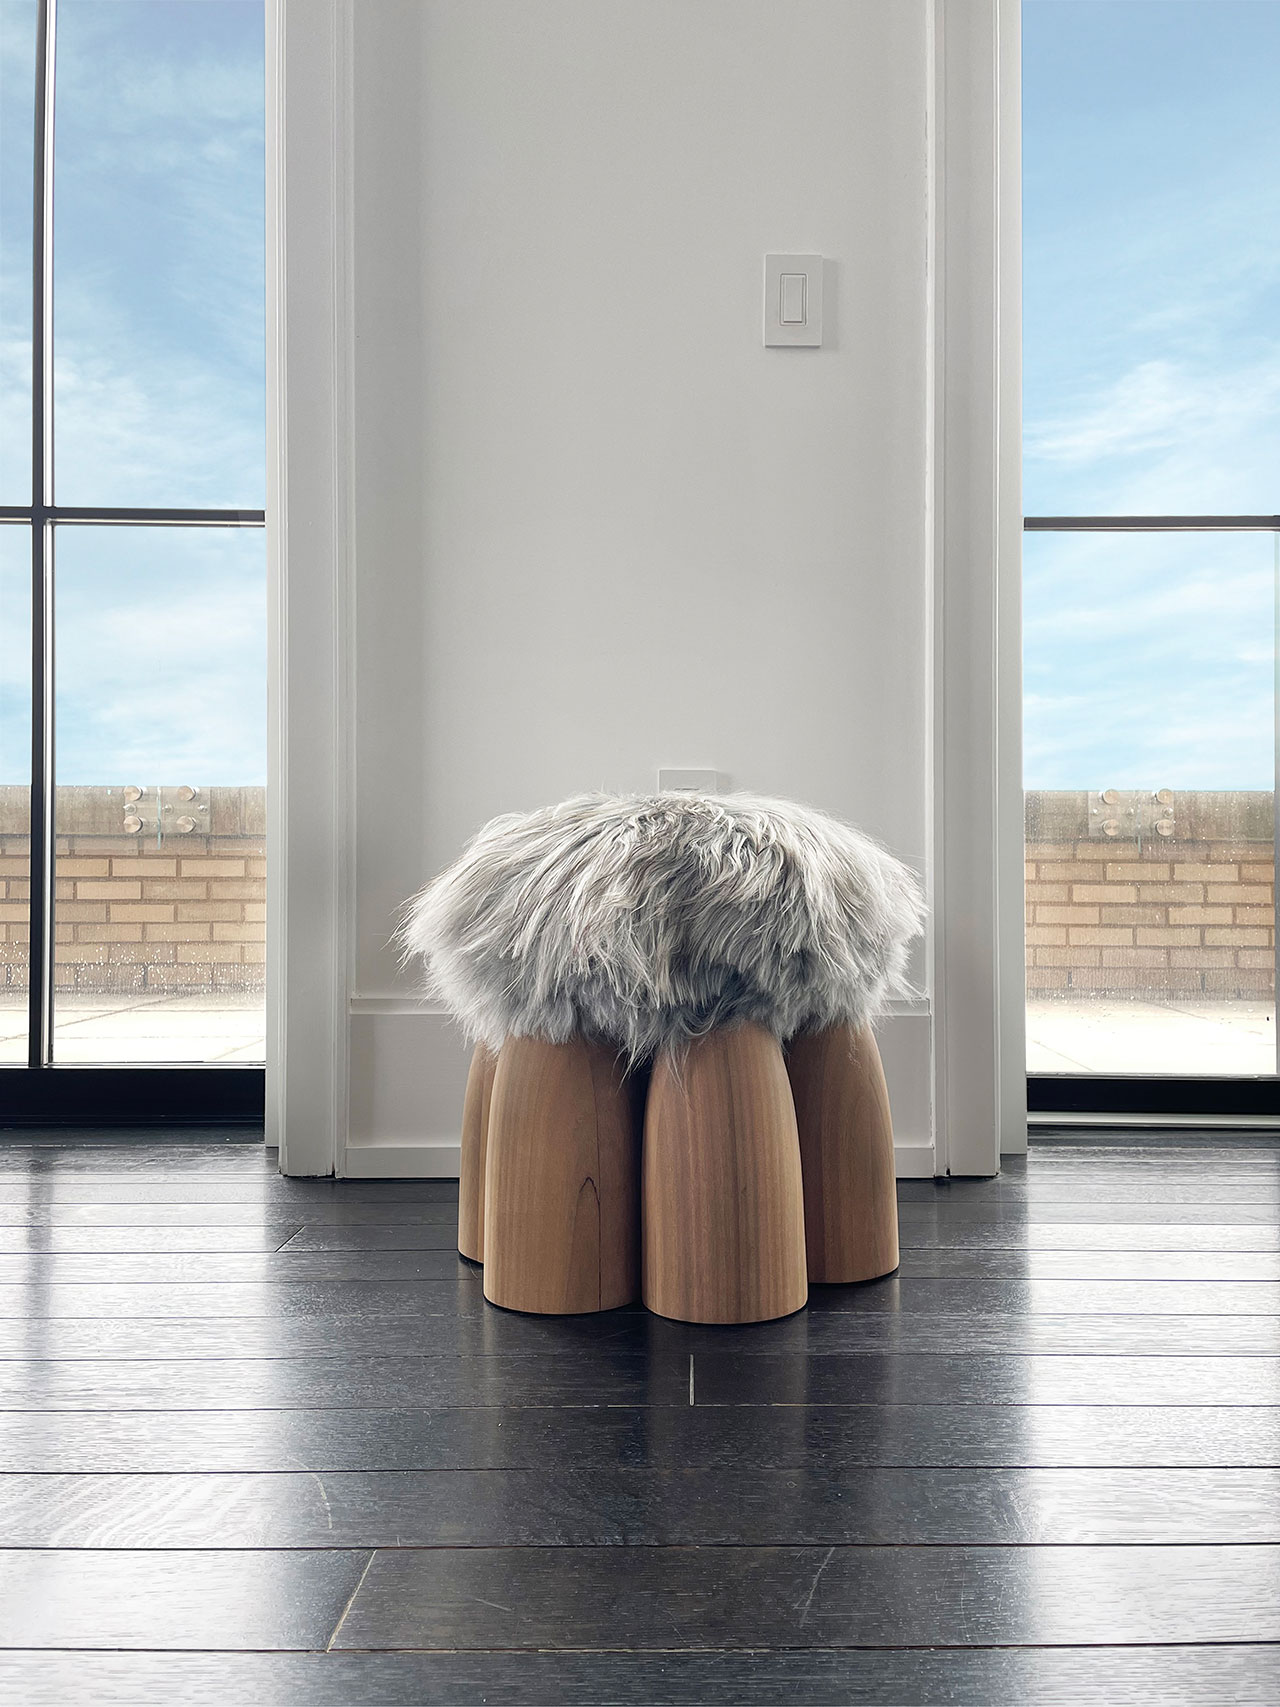 Galerie Philia at Walker Tower, Chelsea, New York. Courtesy of Galerie Philia. Featured: Arno Declerq, Senufo ottoman natural. African walnut and sheep wool. W 45 x D 45 x H 40 cm.